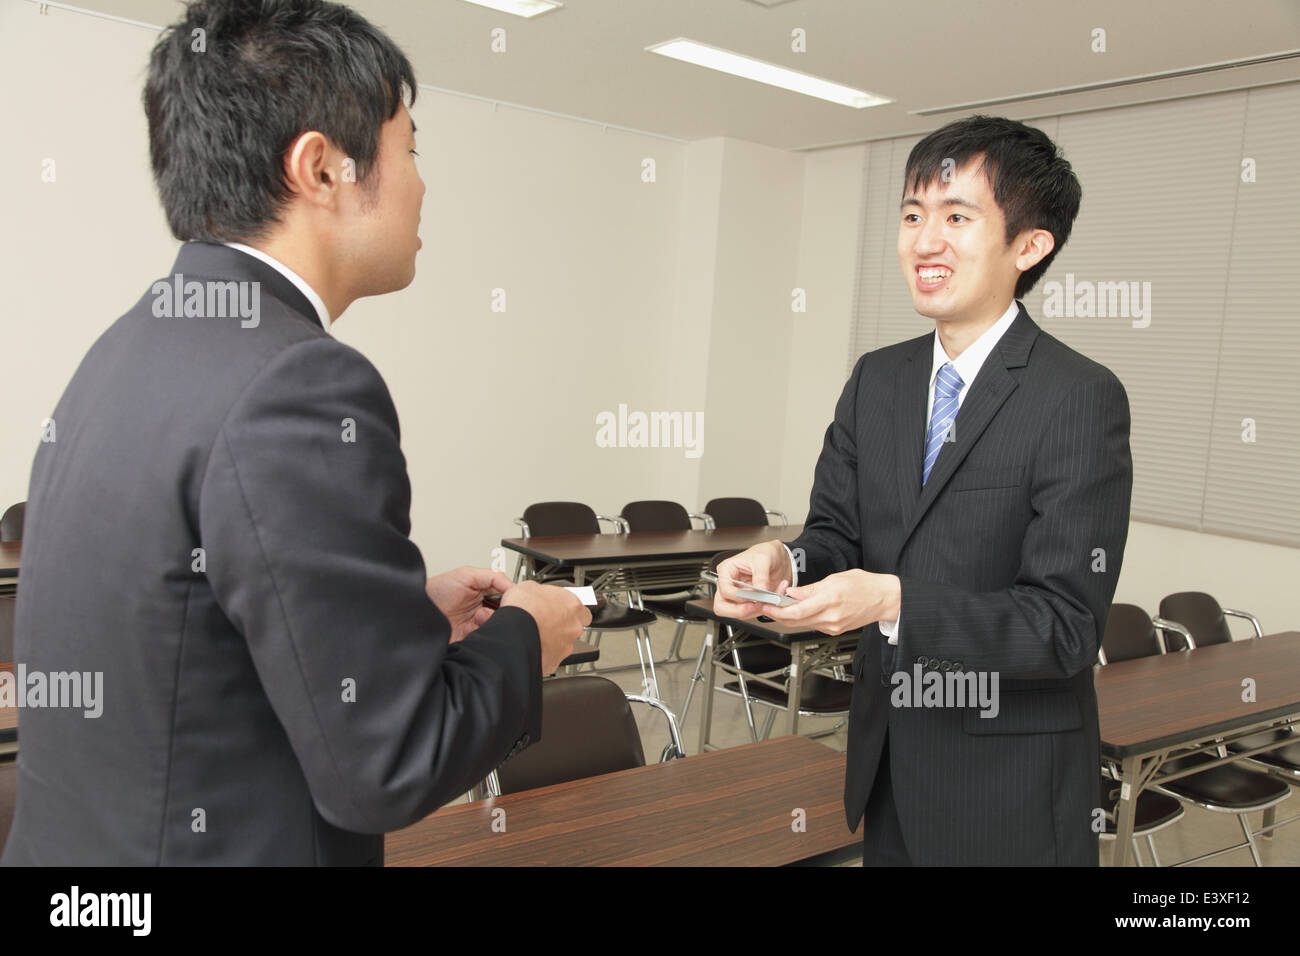 Japanese business people exchanging business cards Stock Photo ...